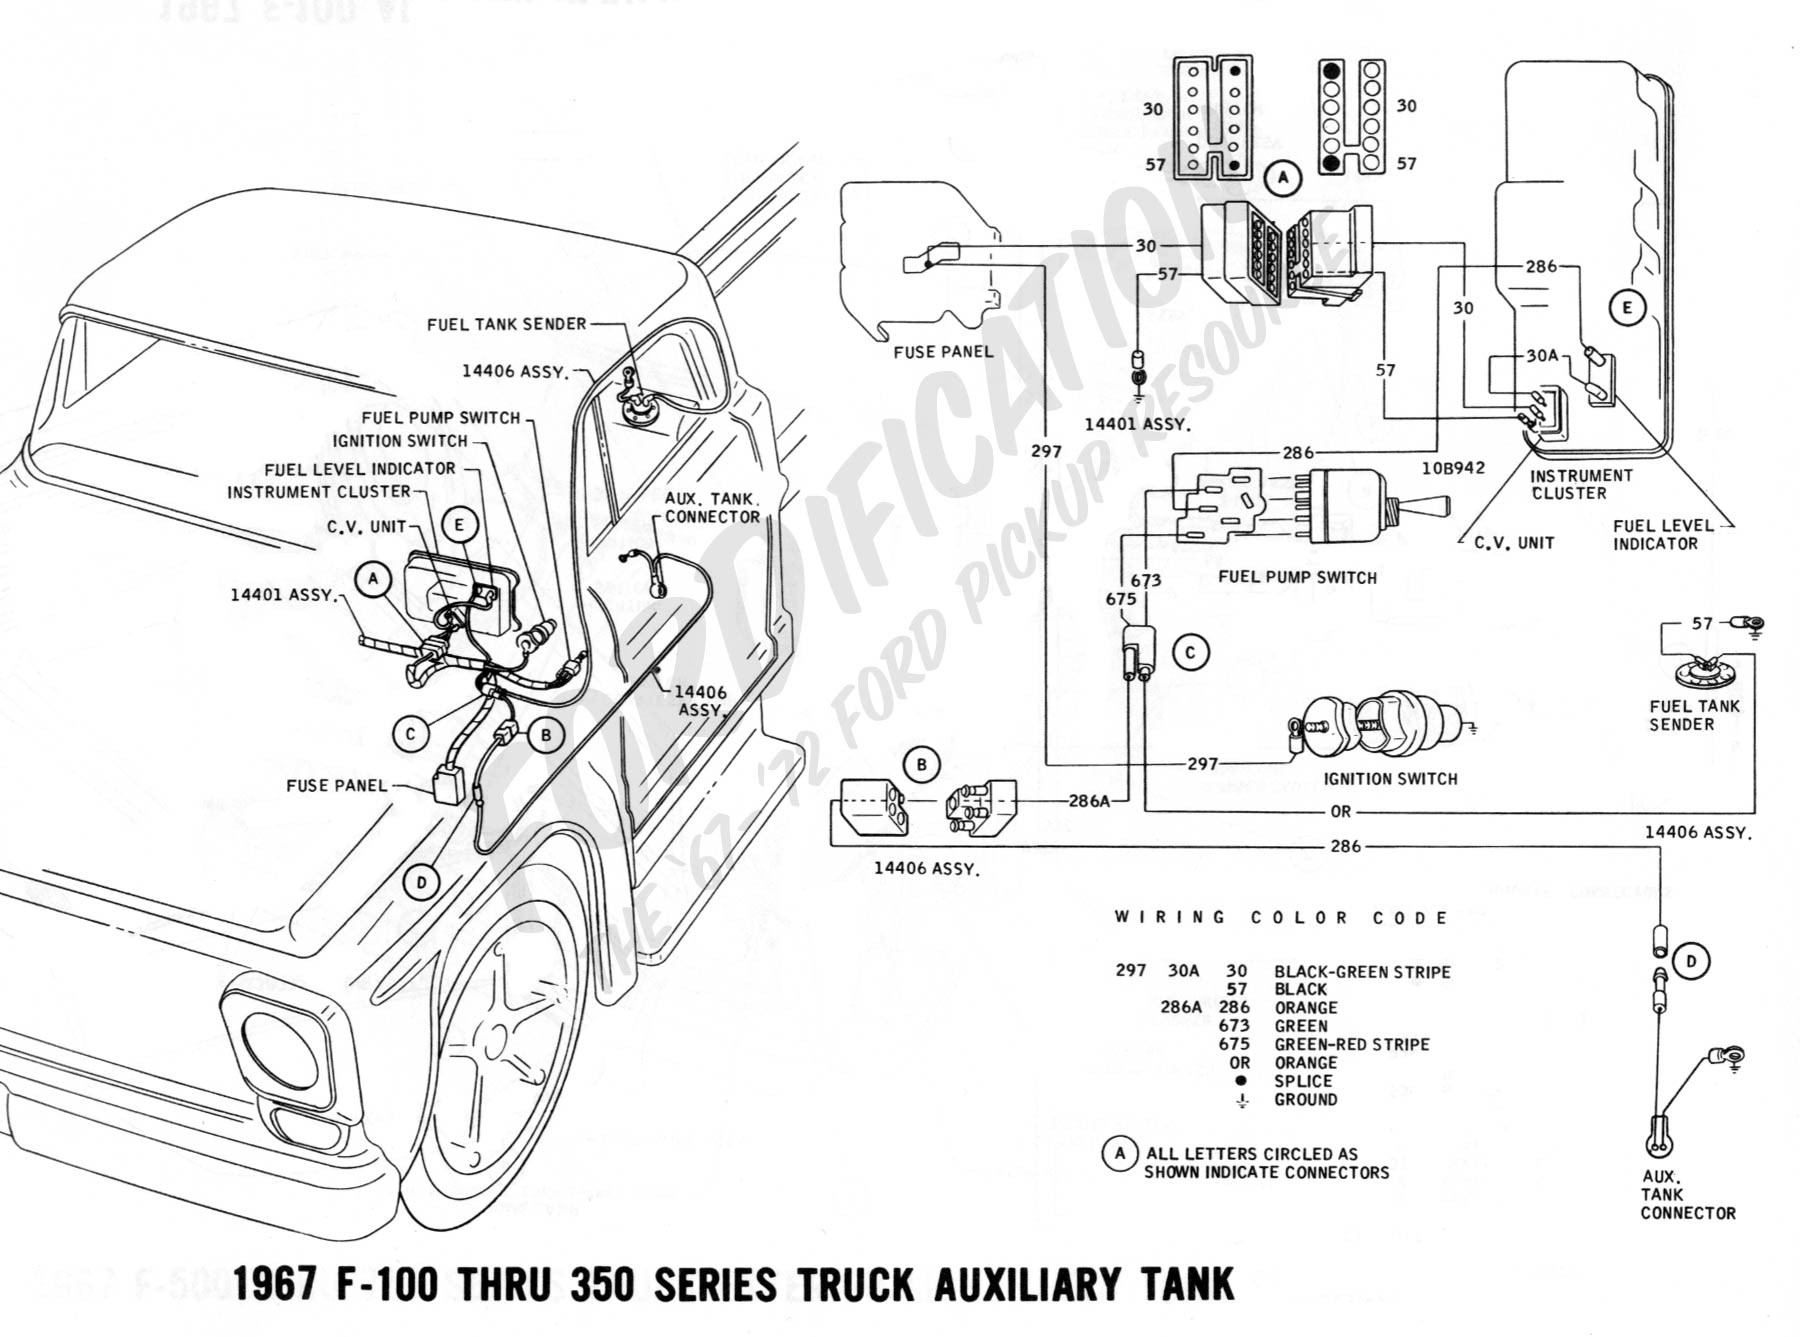 1986 ford ranger fuel system diagram - completed wiring diagram -  wheel-d.bertarellisavino.it  bertarellisavino.it